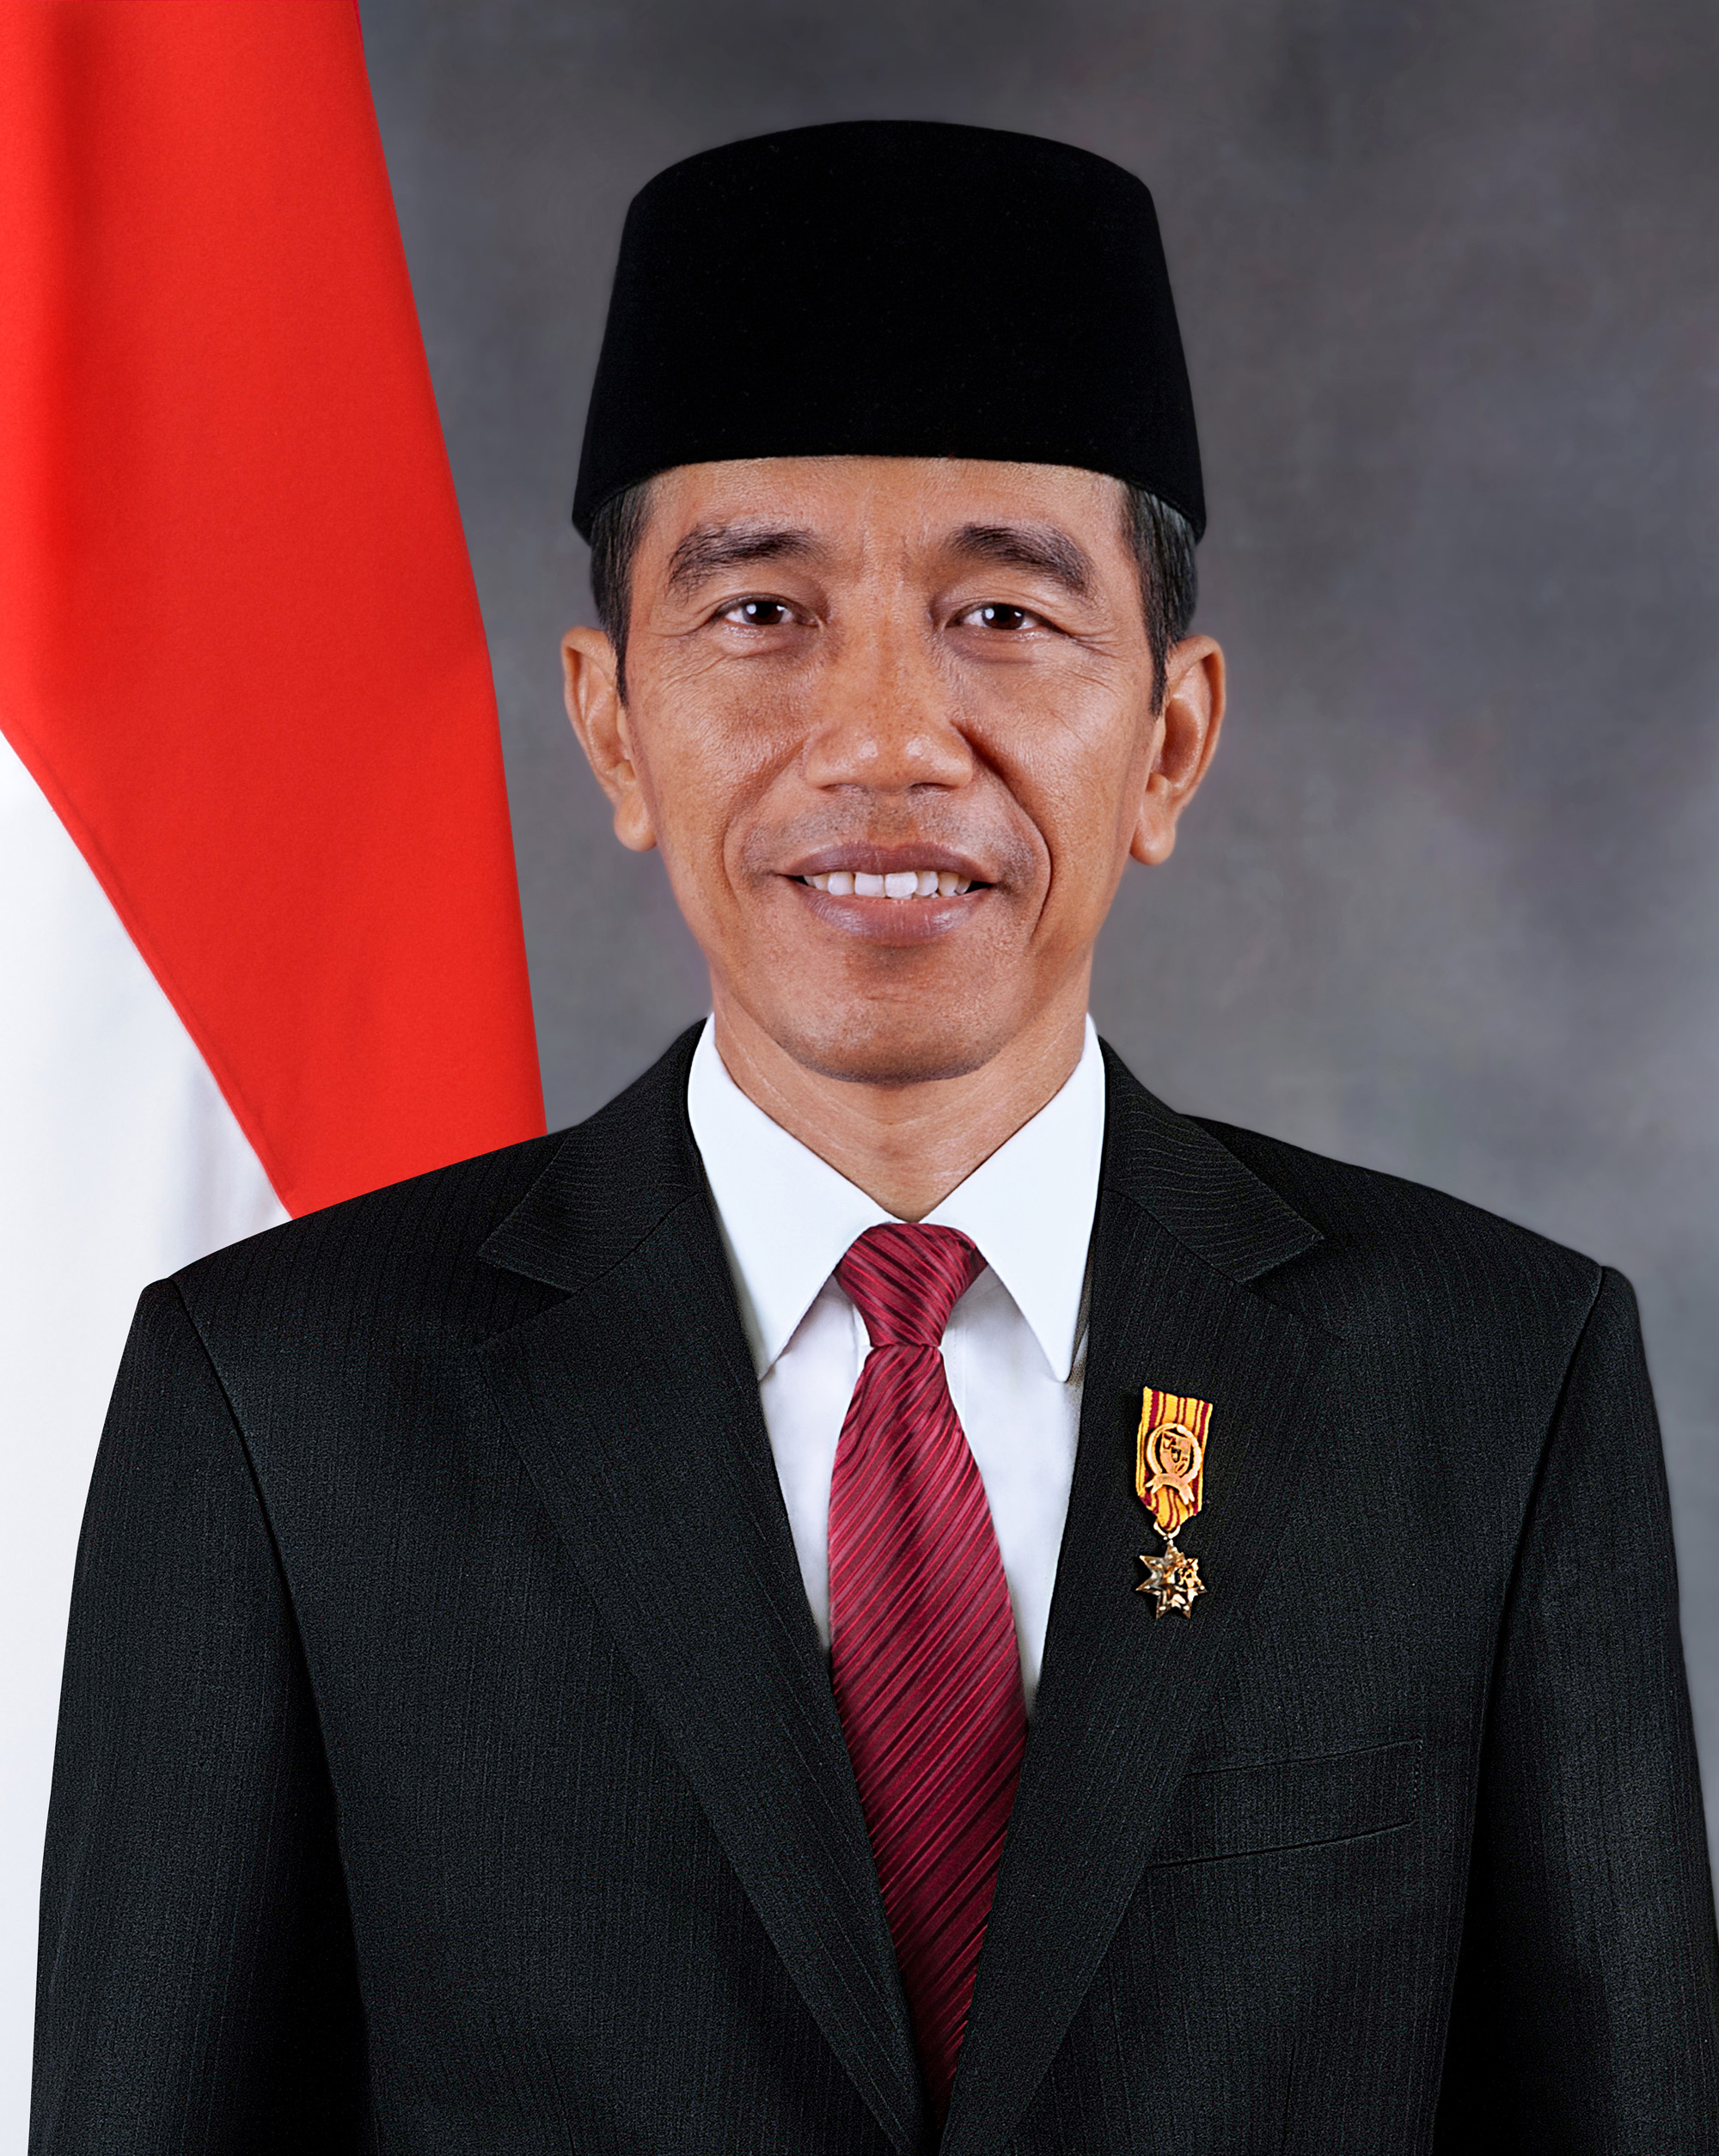 Joko Widodo - Wikipedia bahasa Indonesia, ensiklopedia bebas